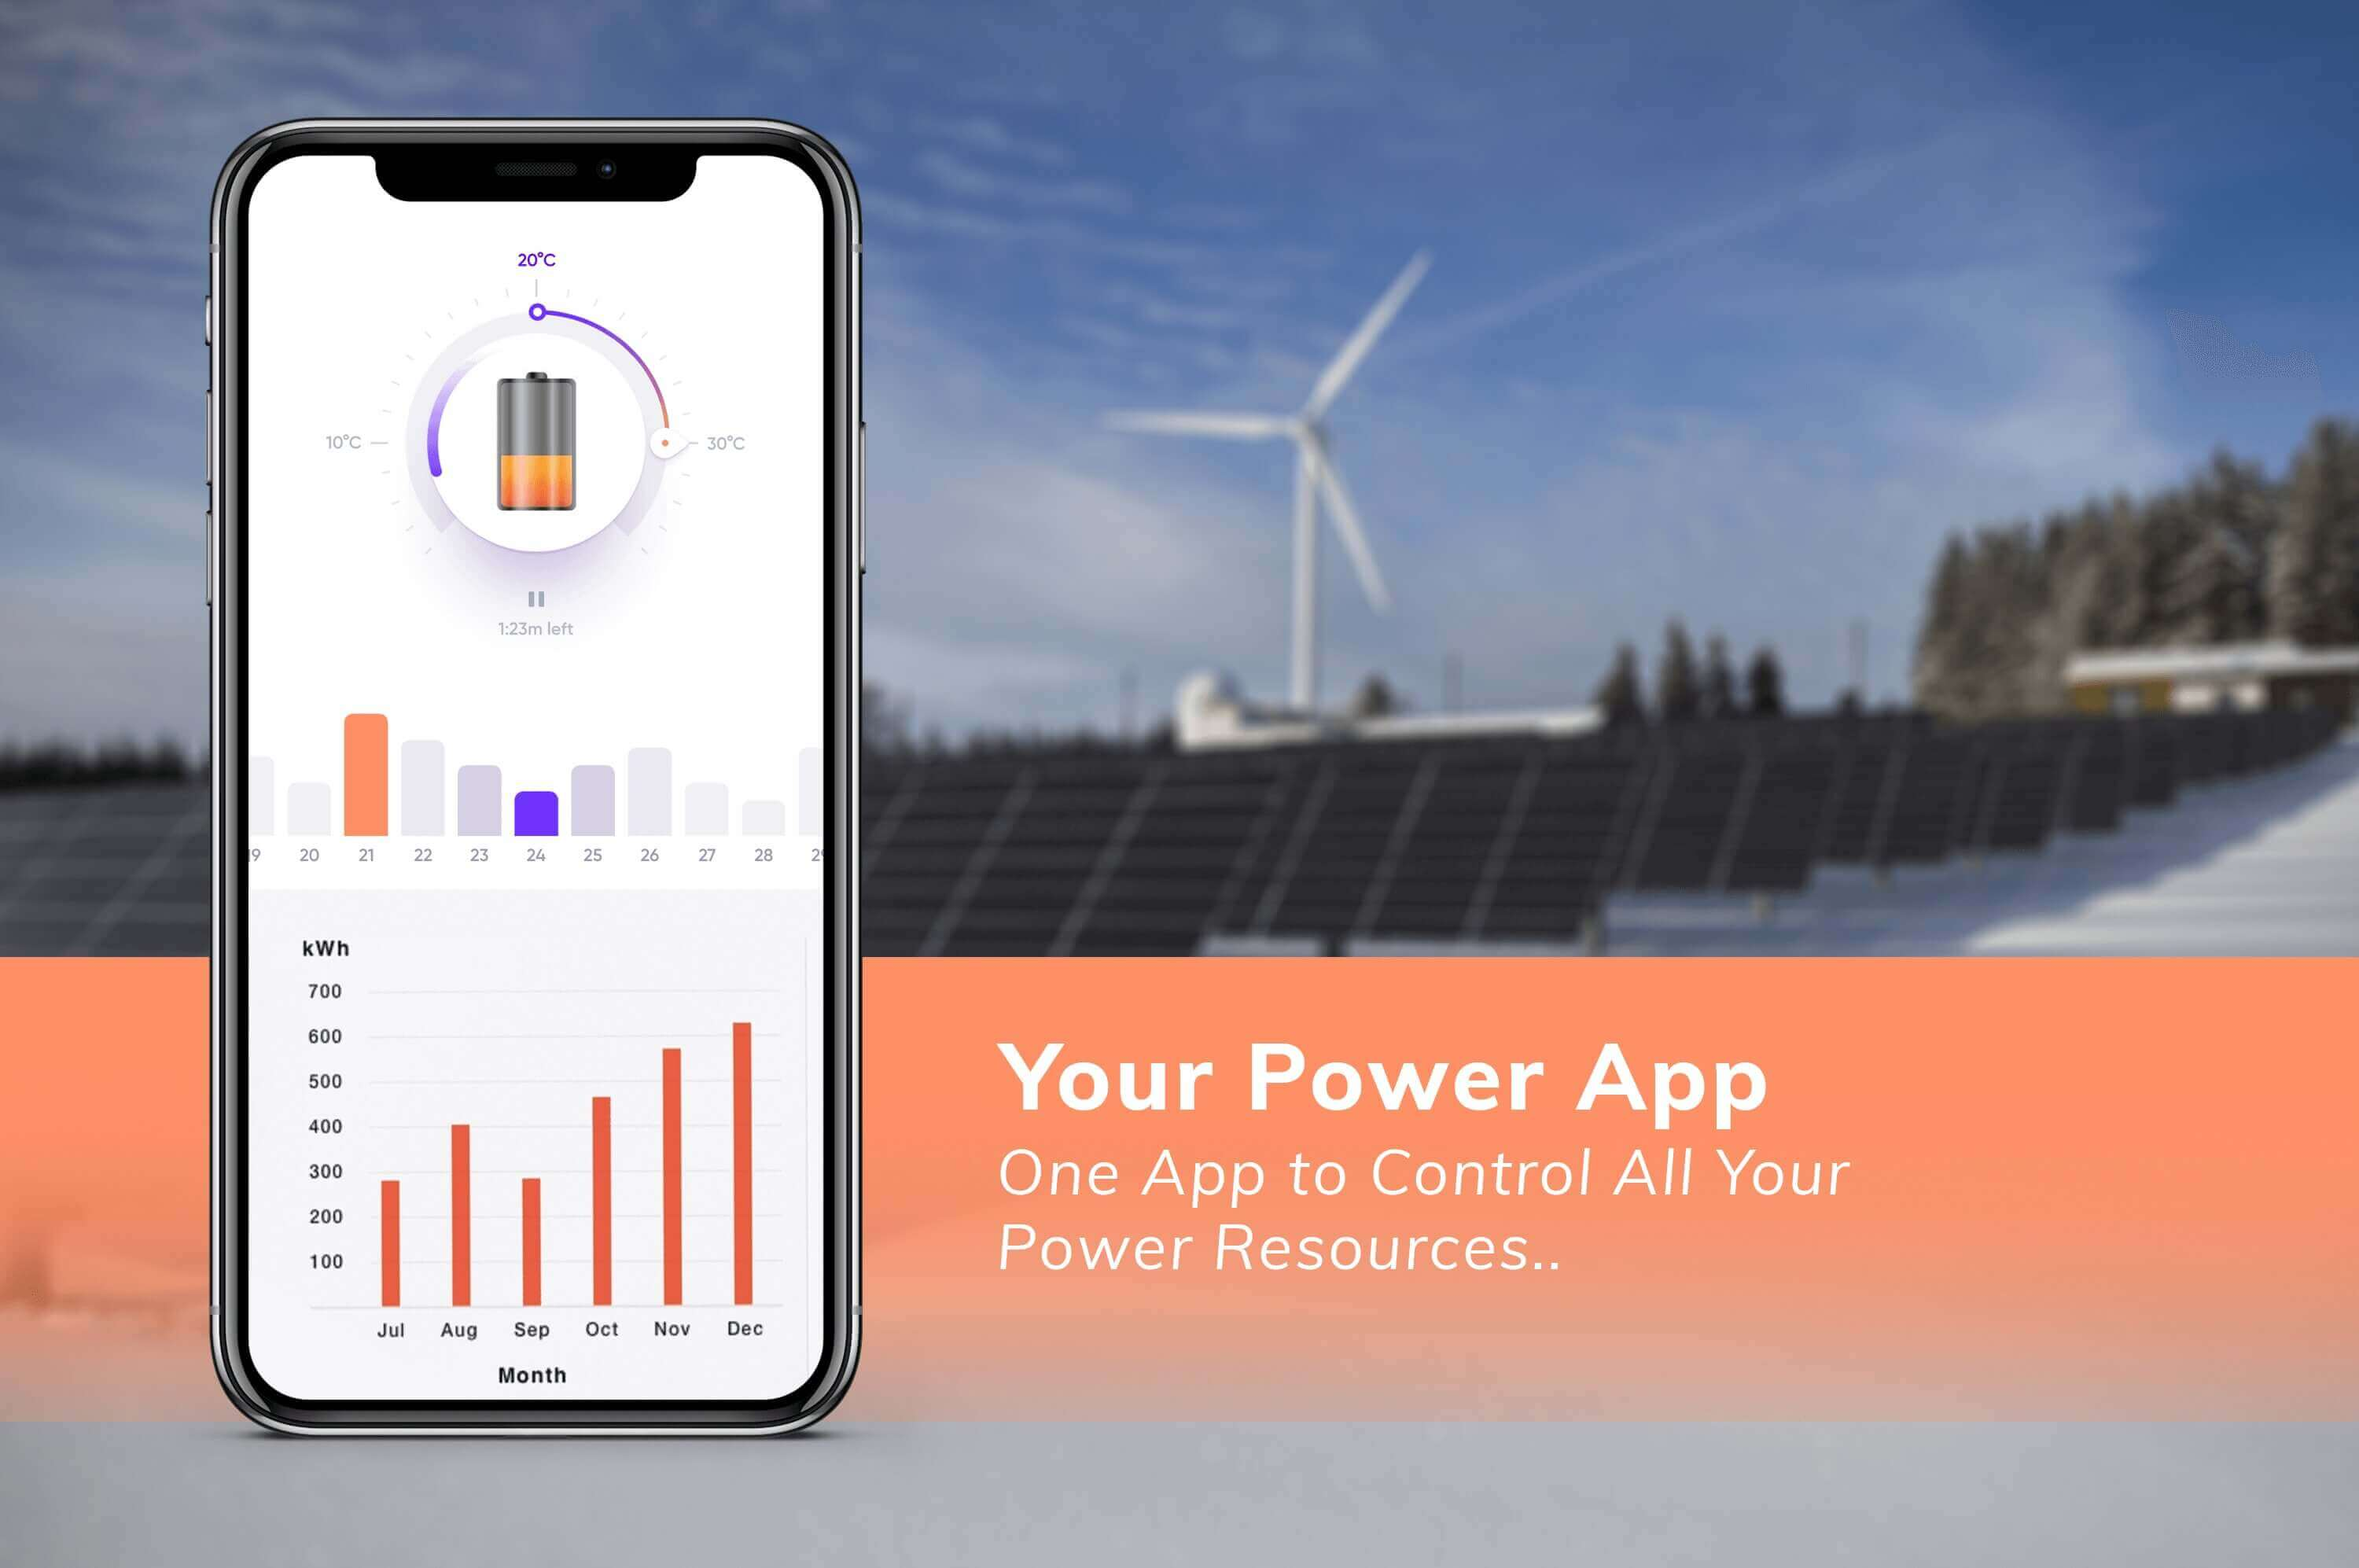 Your power app